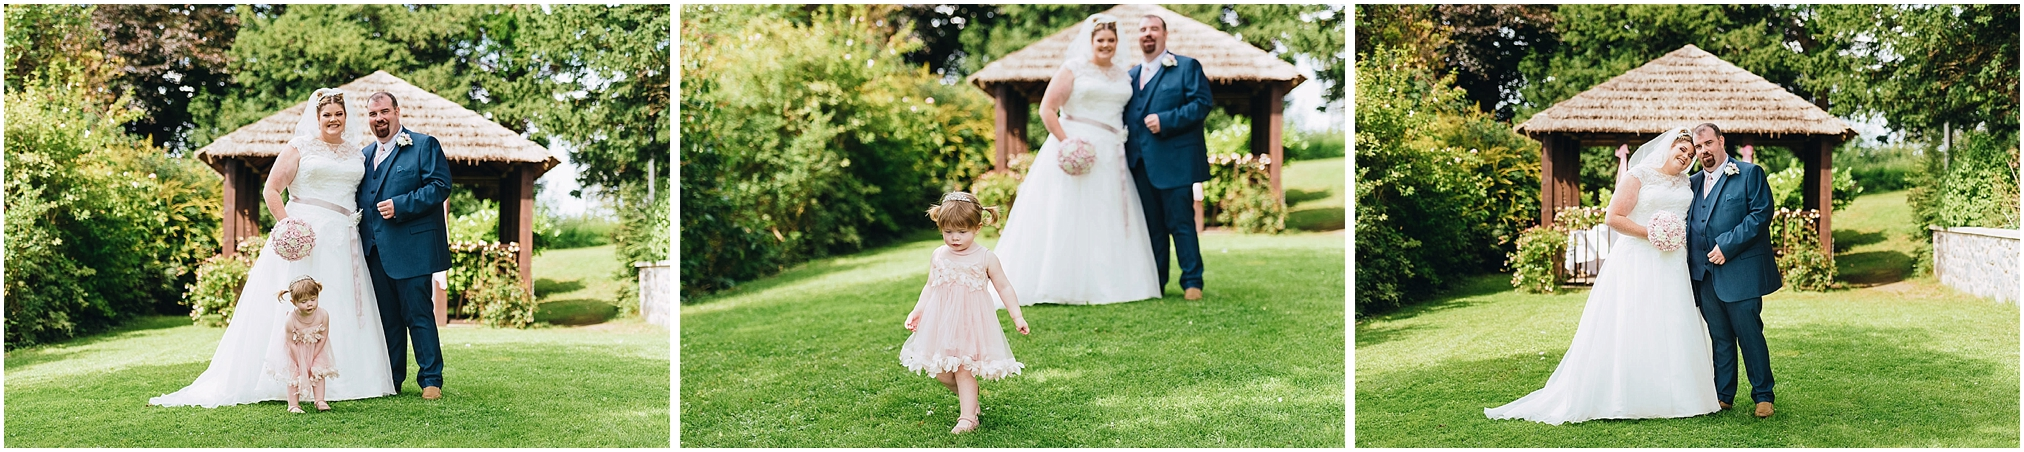 Staffordshire_wedding_photographer-81.jpg